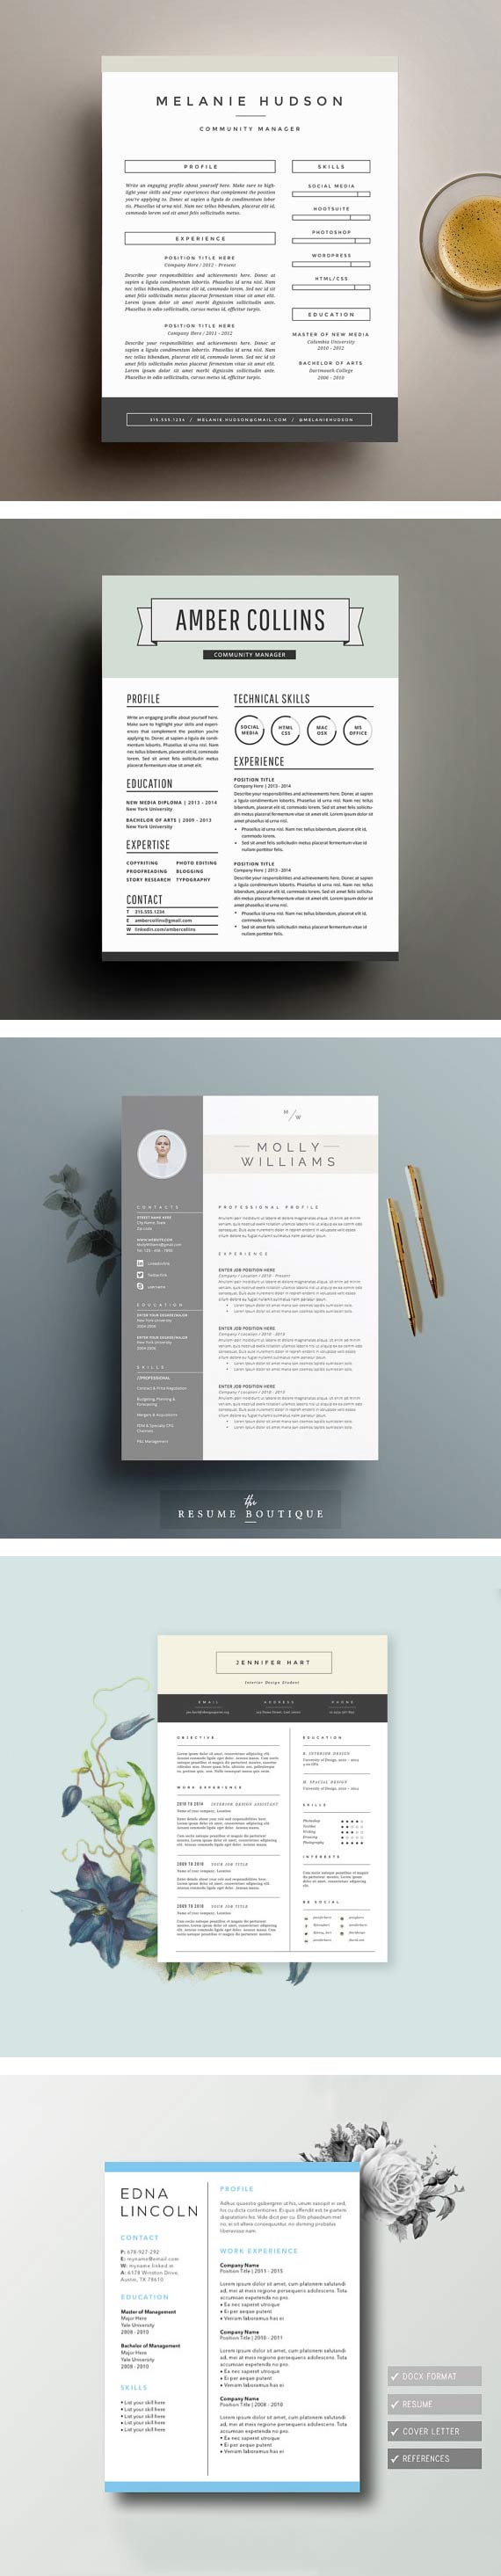 Beautiful Resume Templates You Can Buy On Etsy  Build Your